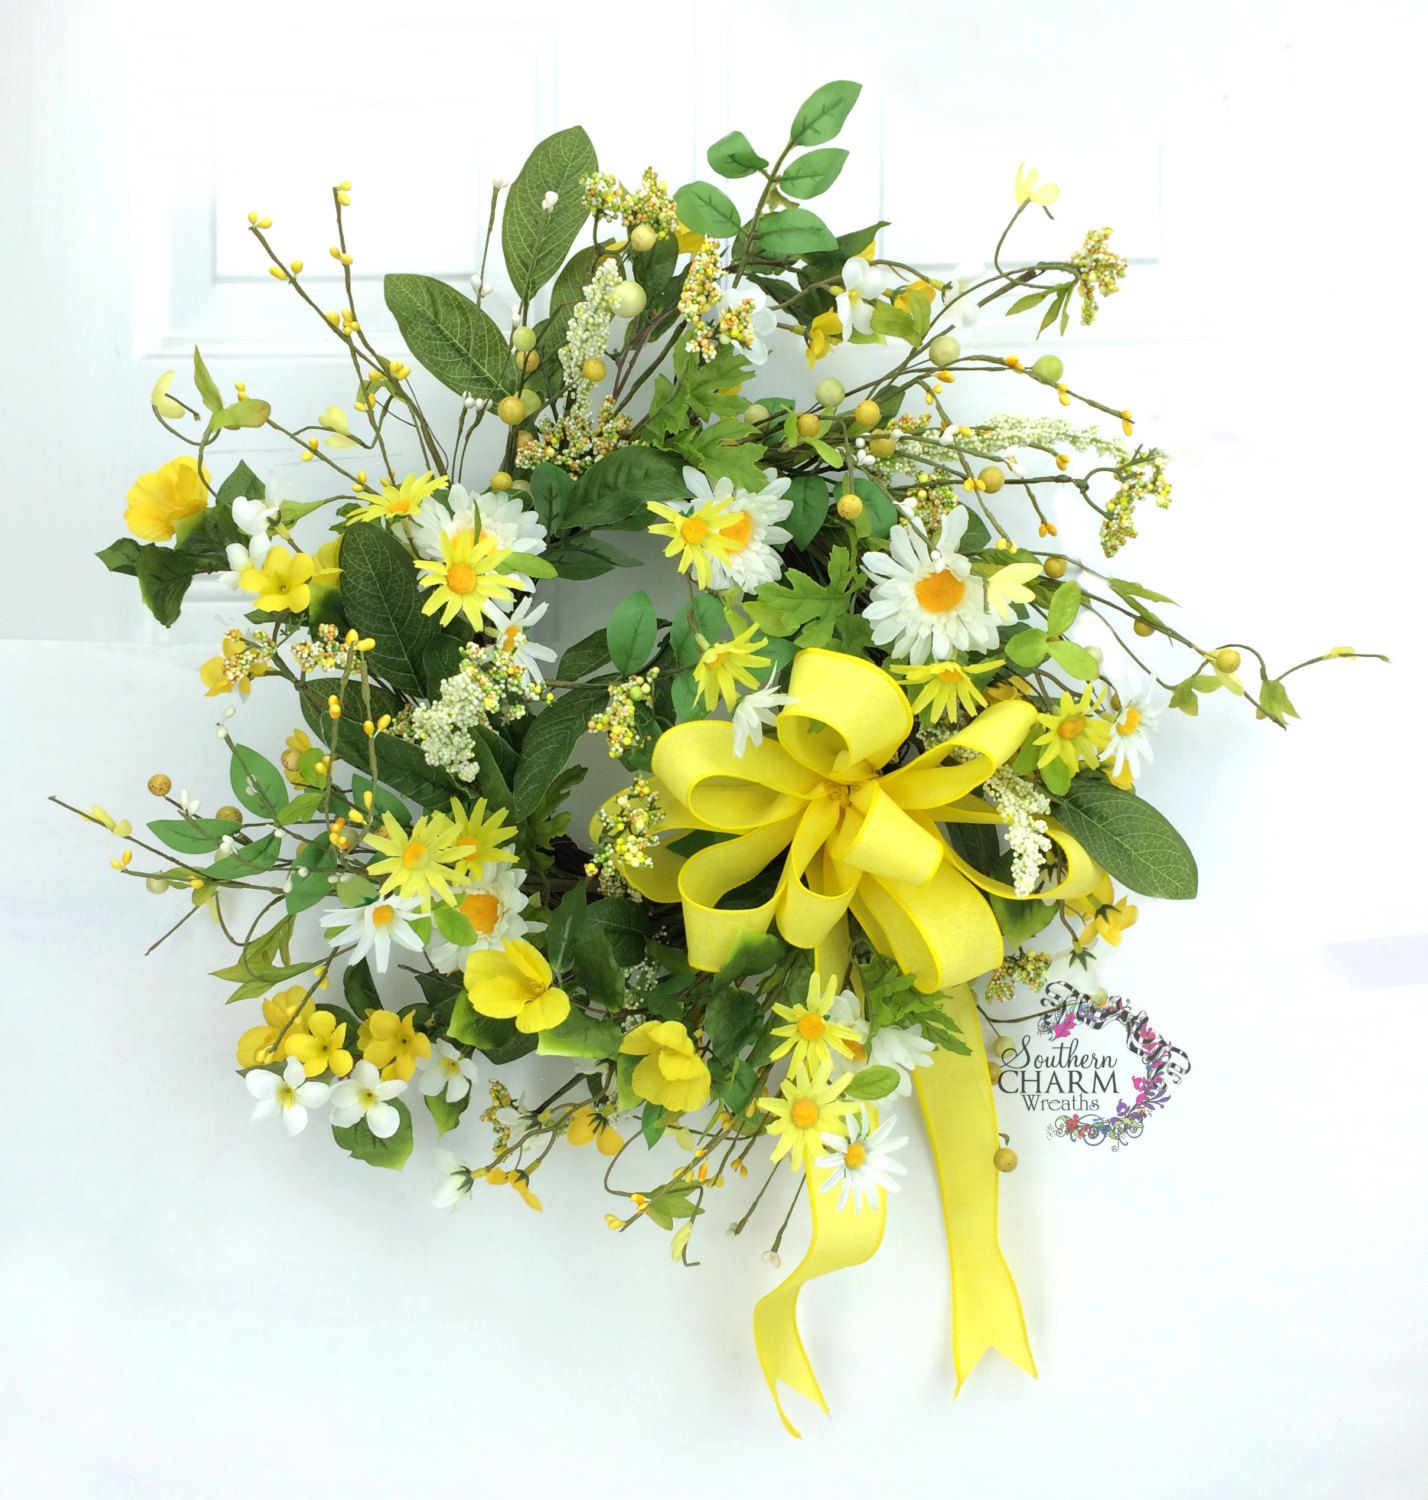 Spring daisy wreath in yellow and white with berries and bow